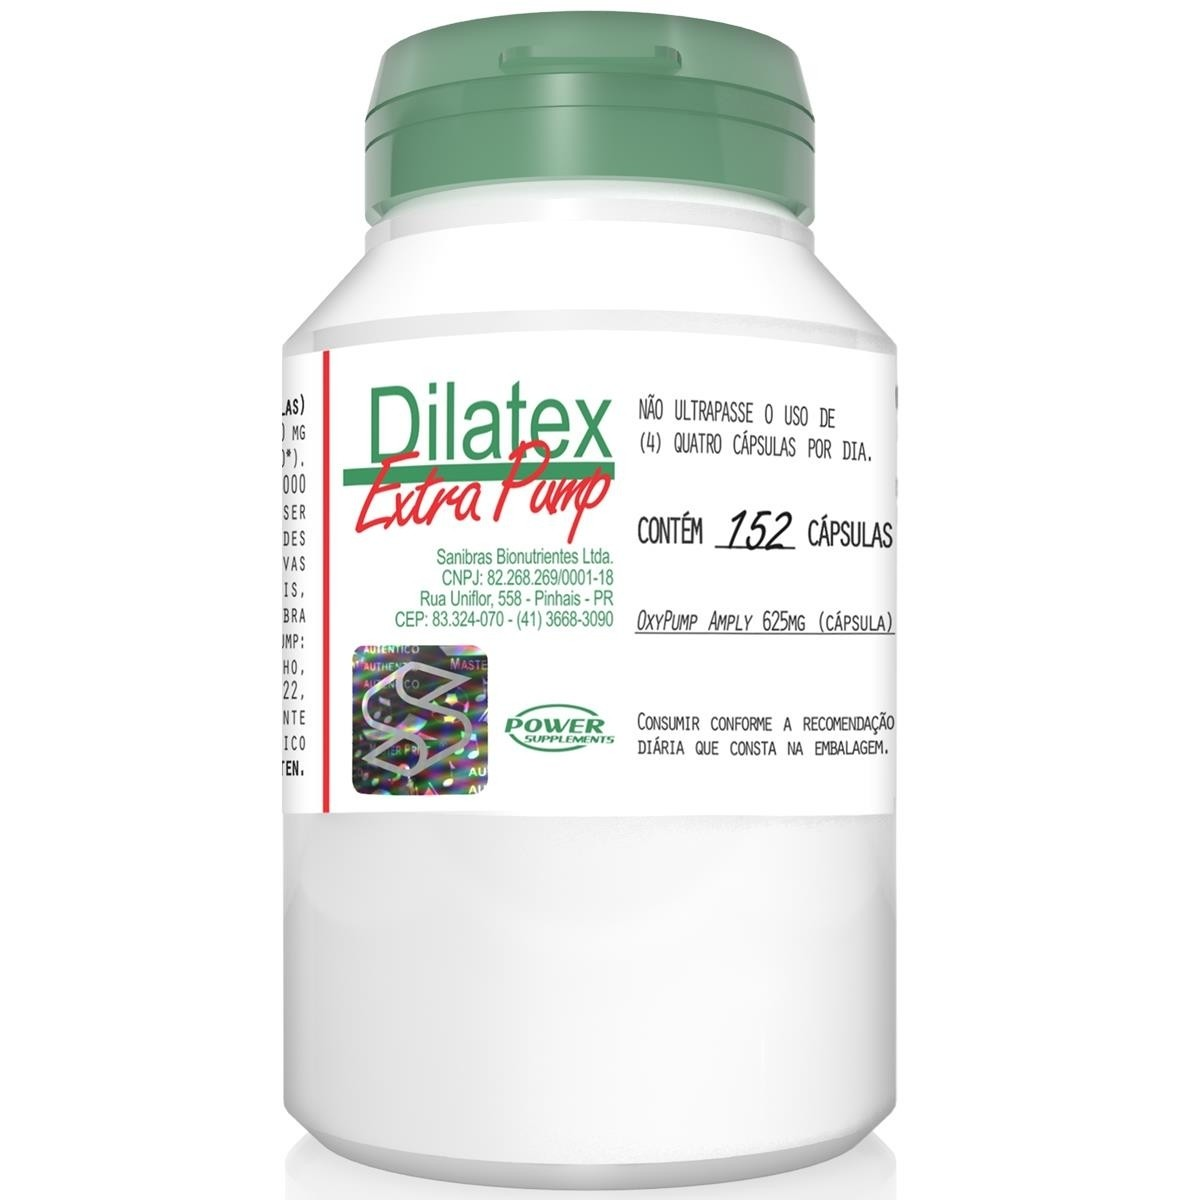 DILATEX 152 CAPS OXYPUMP AMBLY 625MG - POWER SUPPLEMENTS